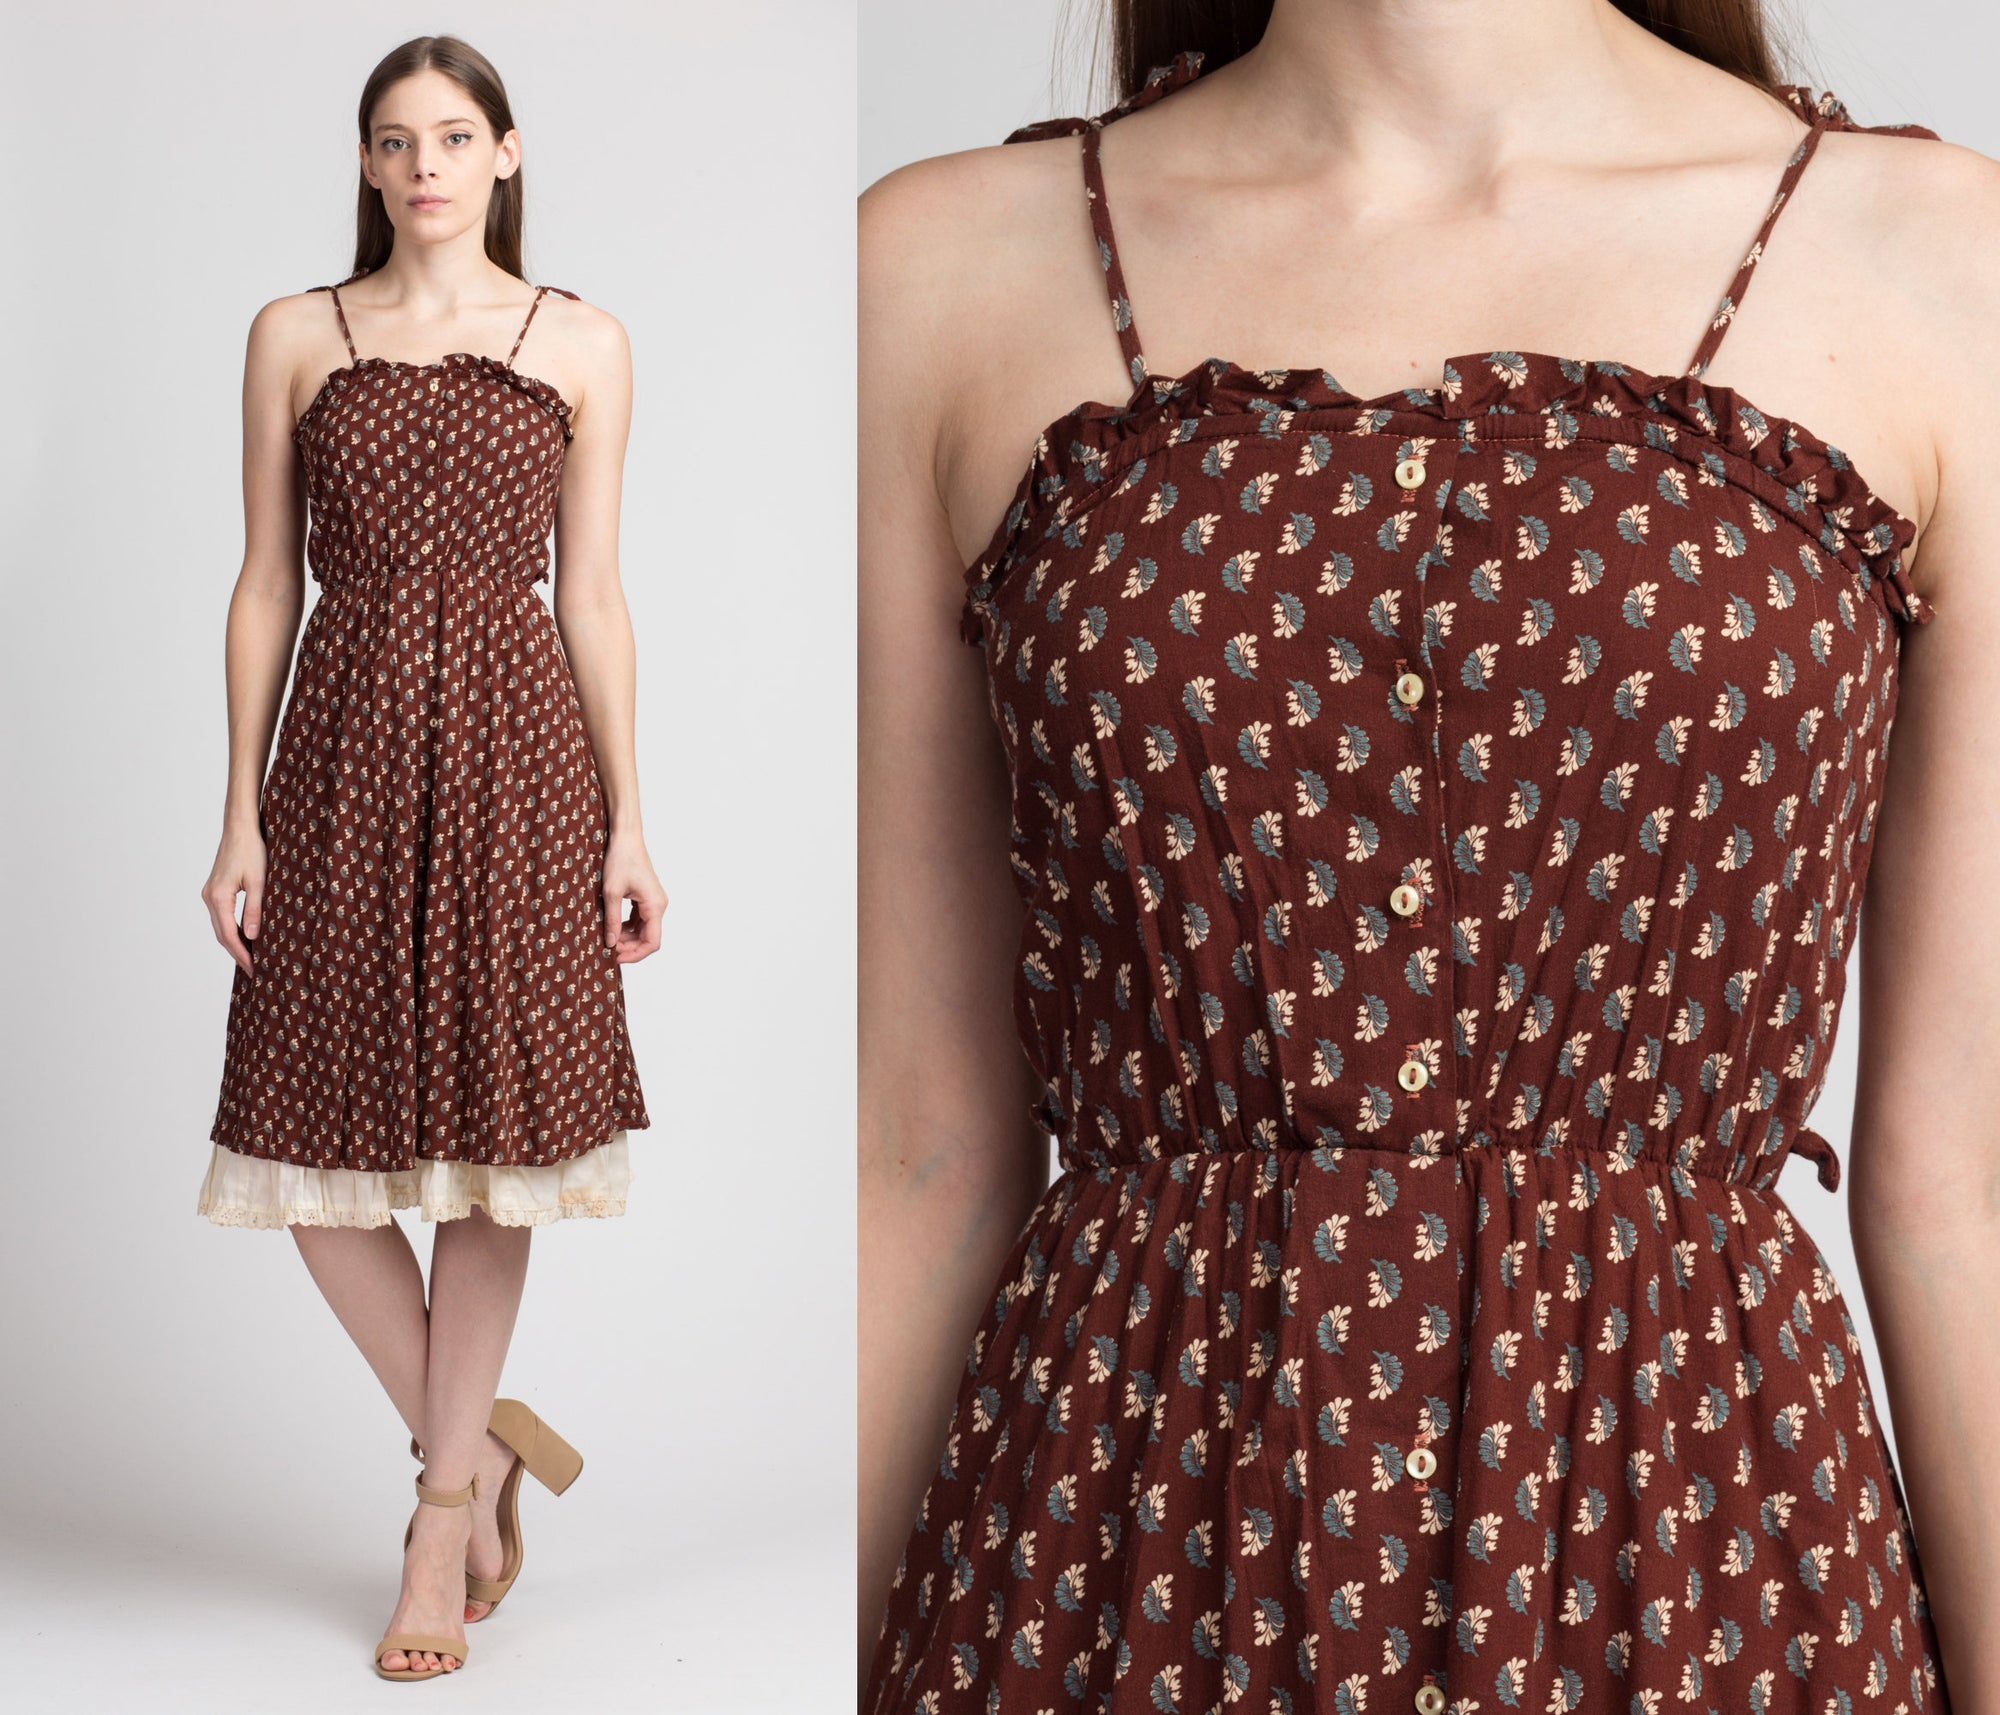 70s Boho Floral Eyelet Trim Sundress - Extra Small